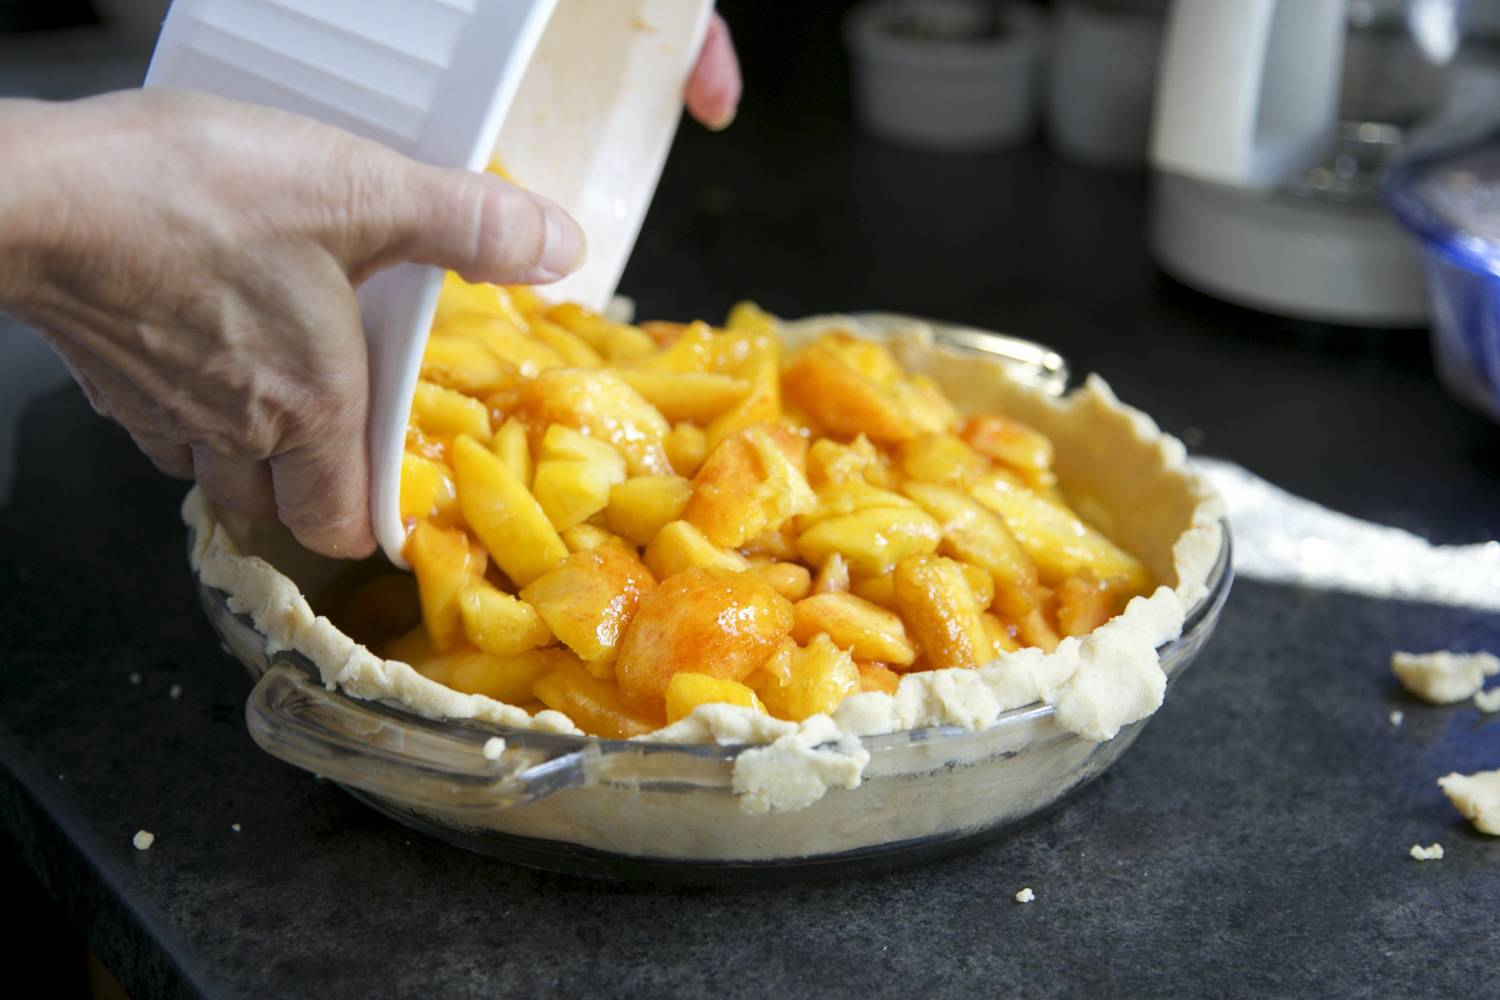 Image of a pie crust being filled with apple in a pie dish.